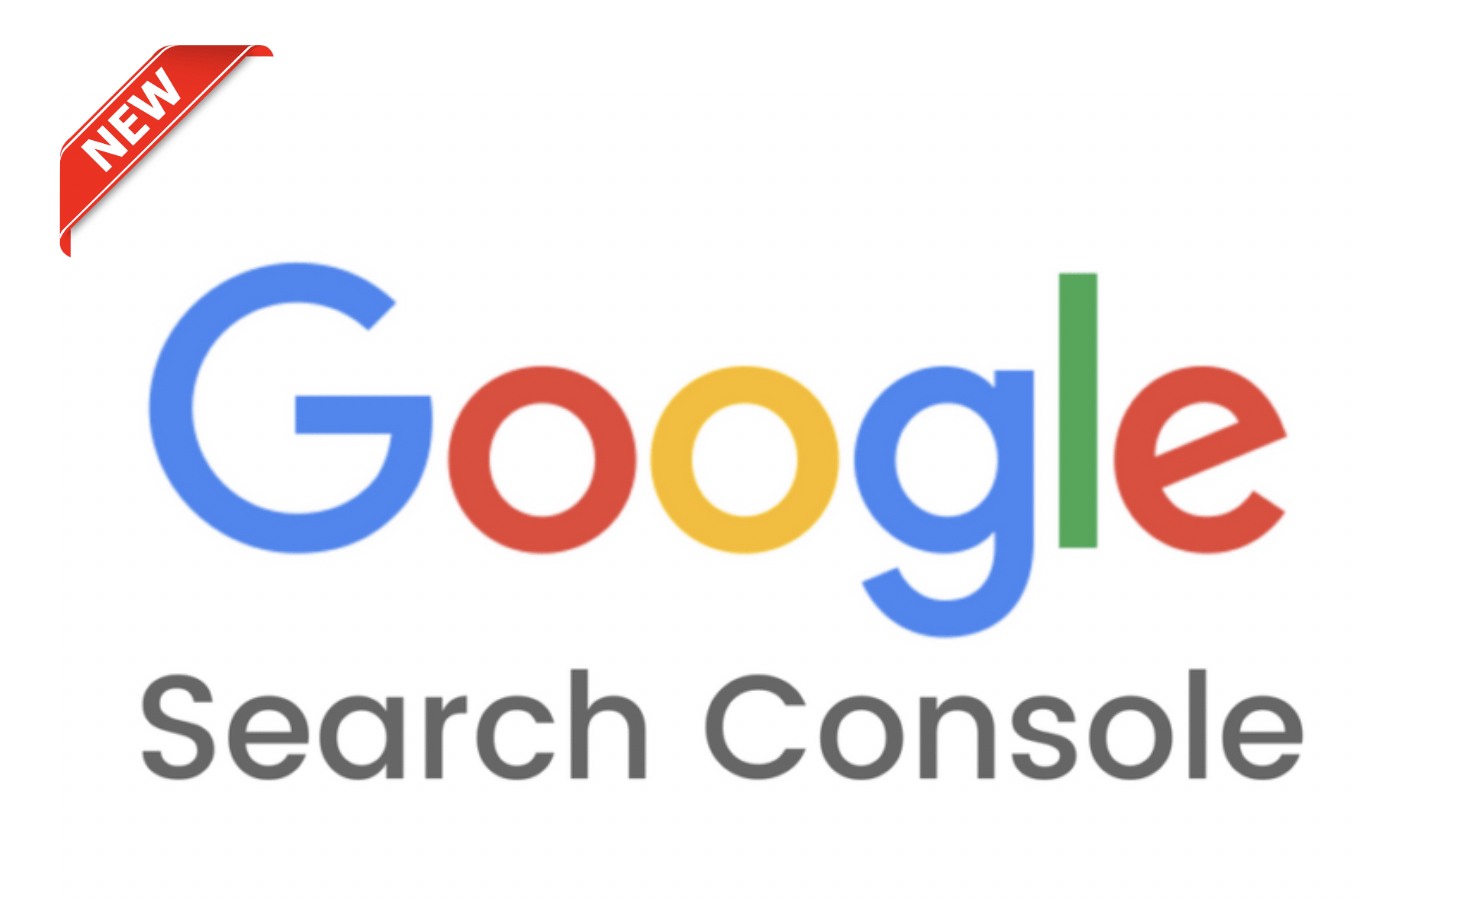 Google Search Console Adds Review Snippets Performance And Testing | DeviceDaily.com